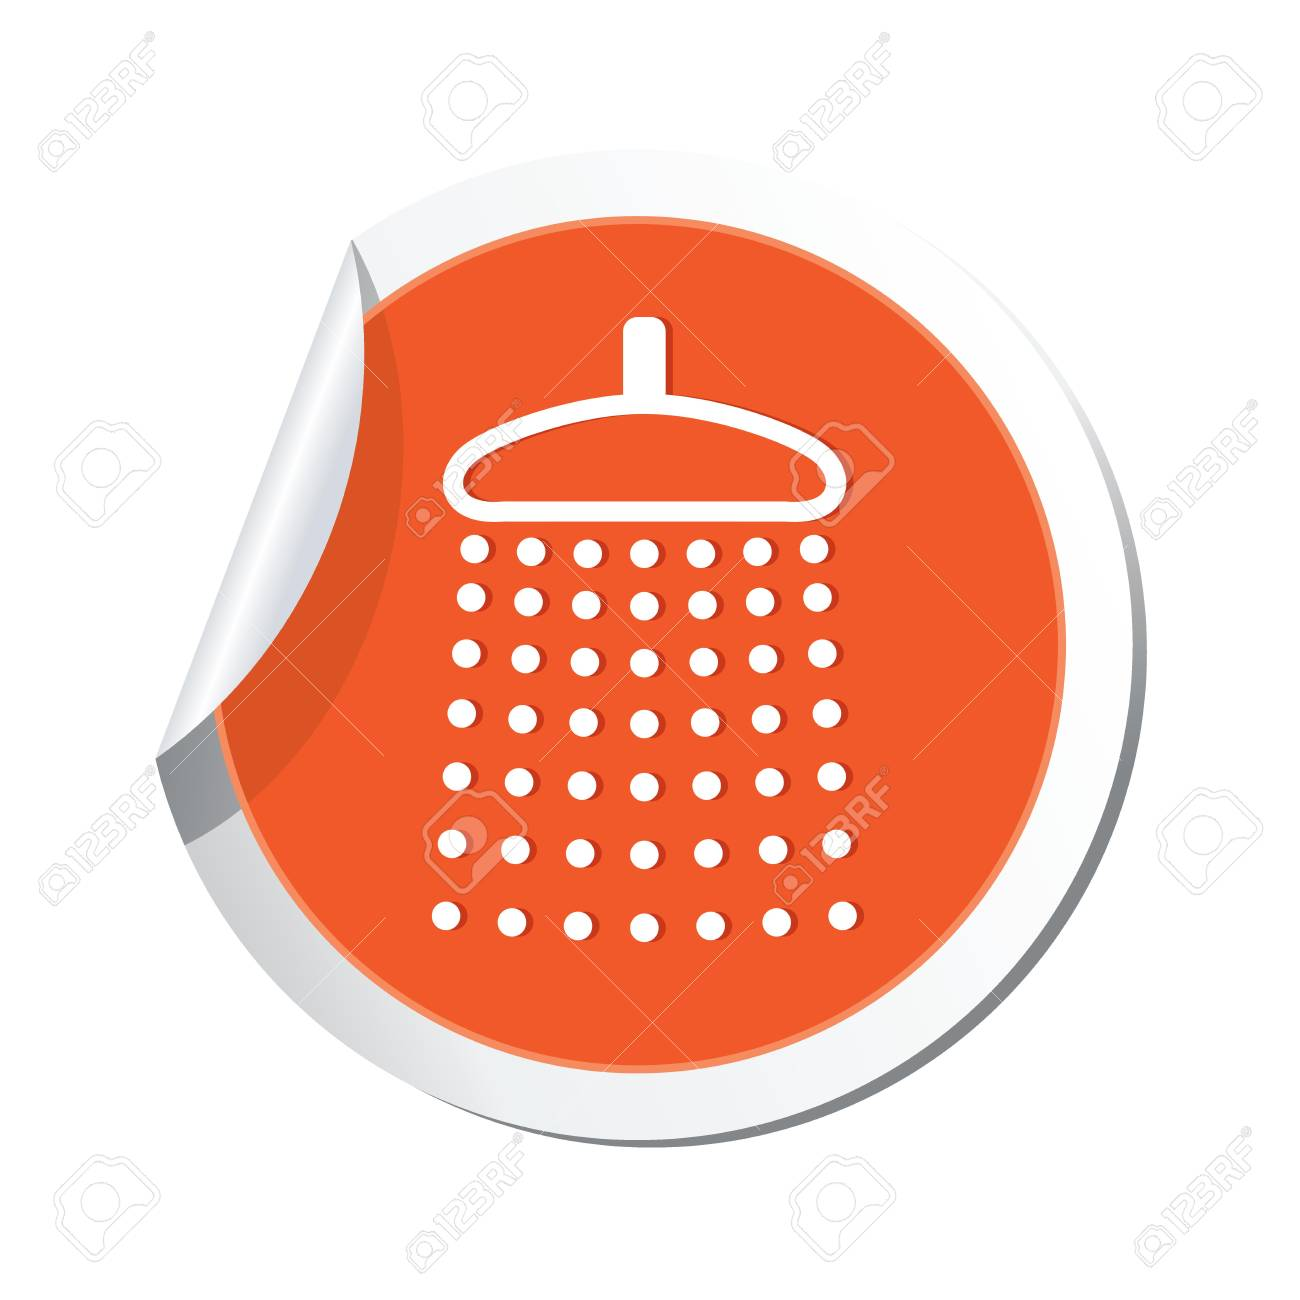 Shower icon  Vector illustration Stock Vector - 23824471